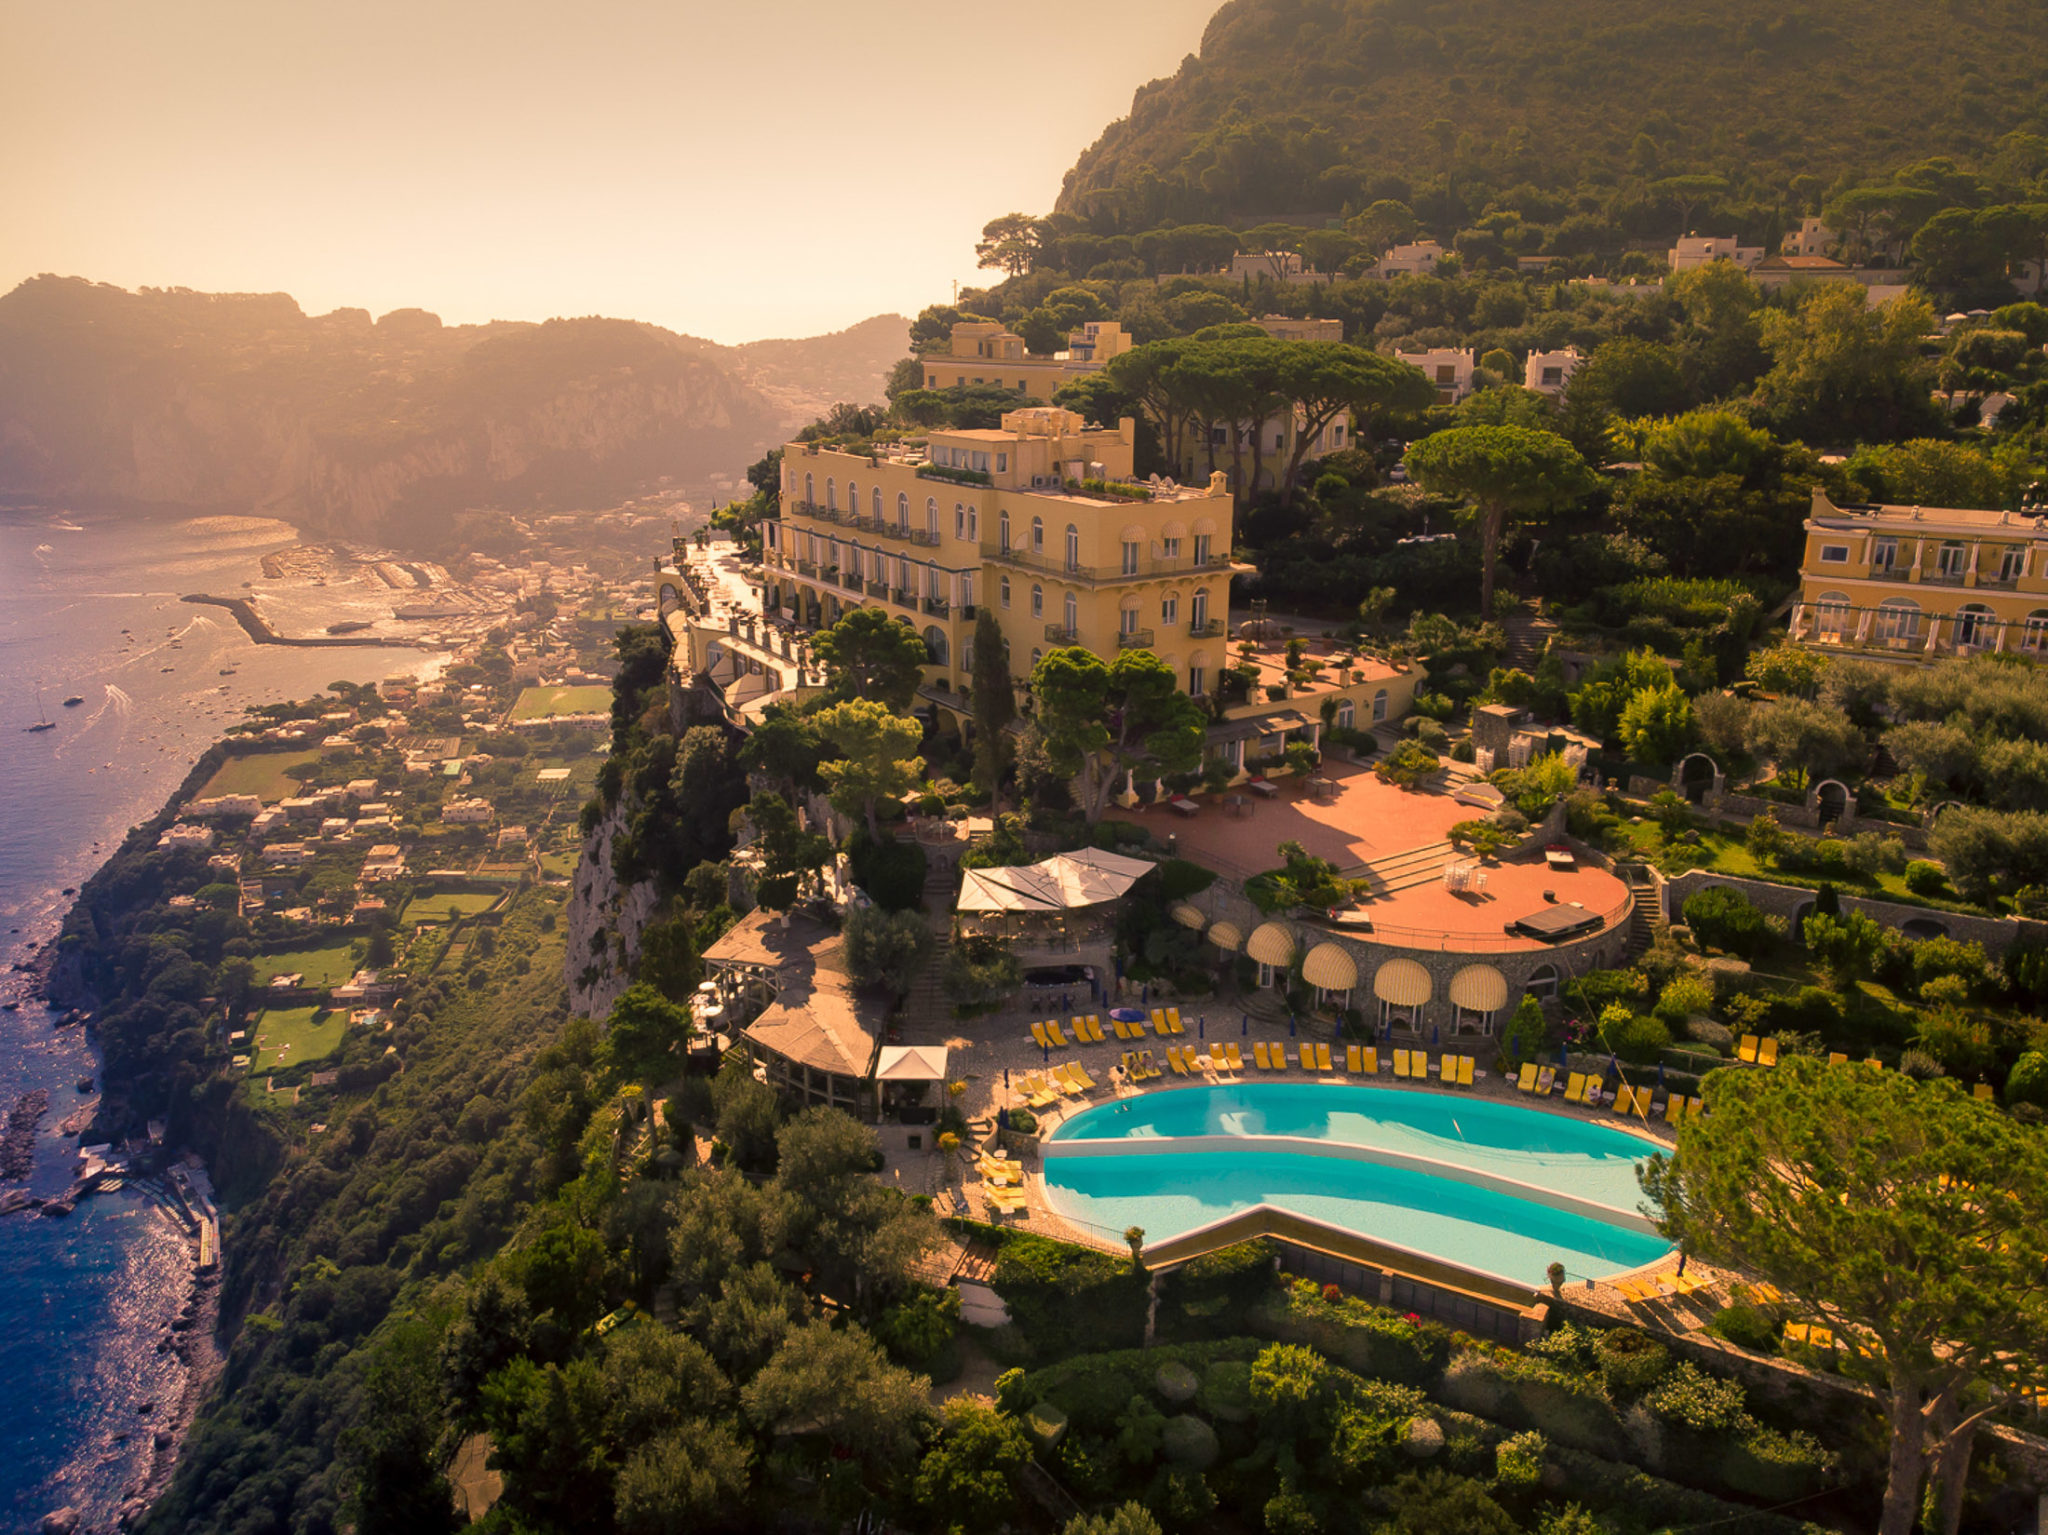 Hotel Caesar Augustus Anacapri Wedding Venue Wedaways